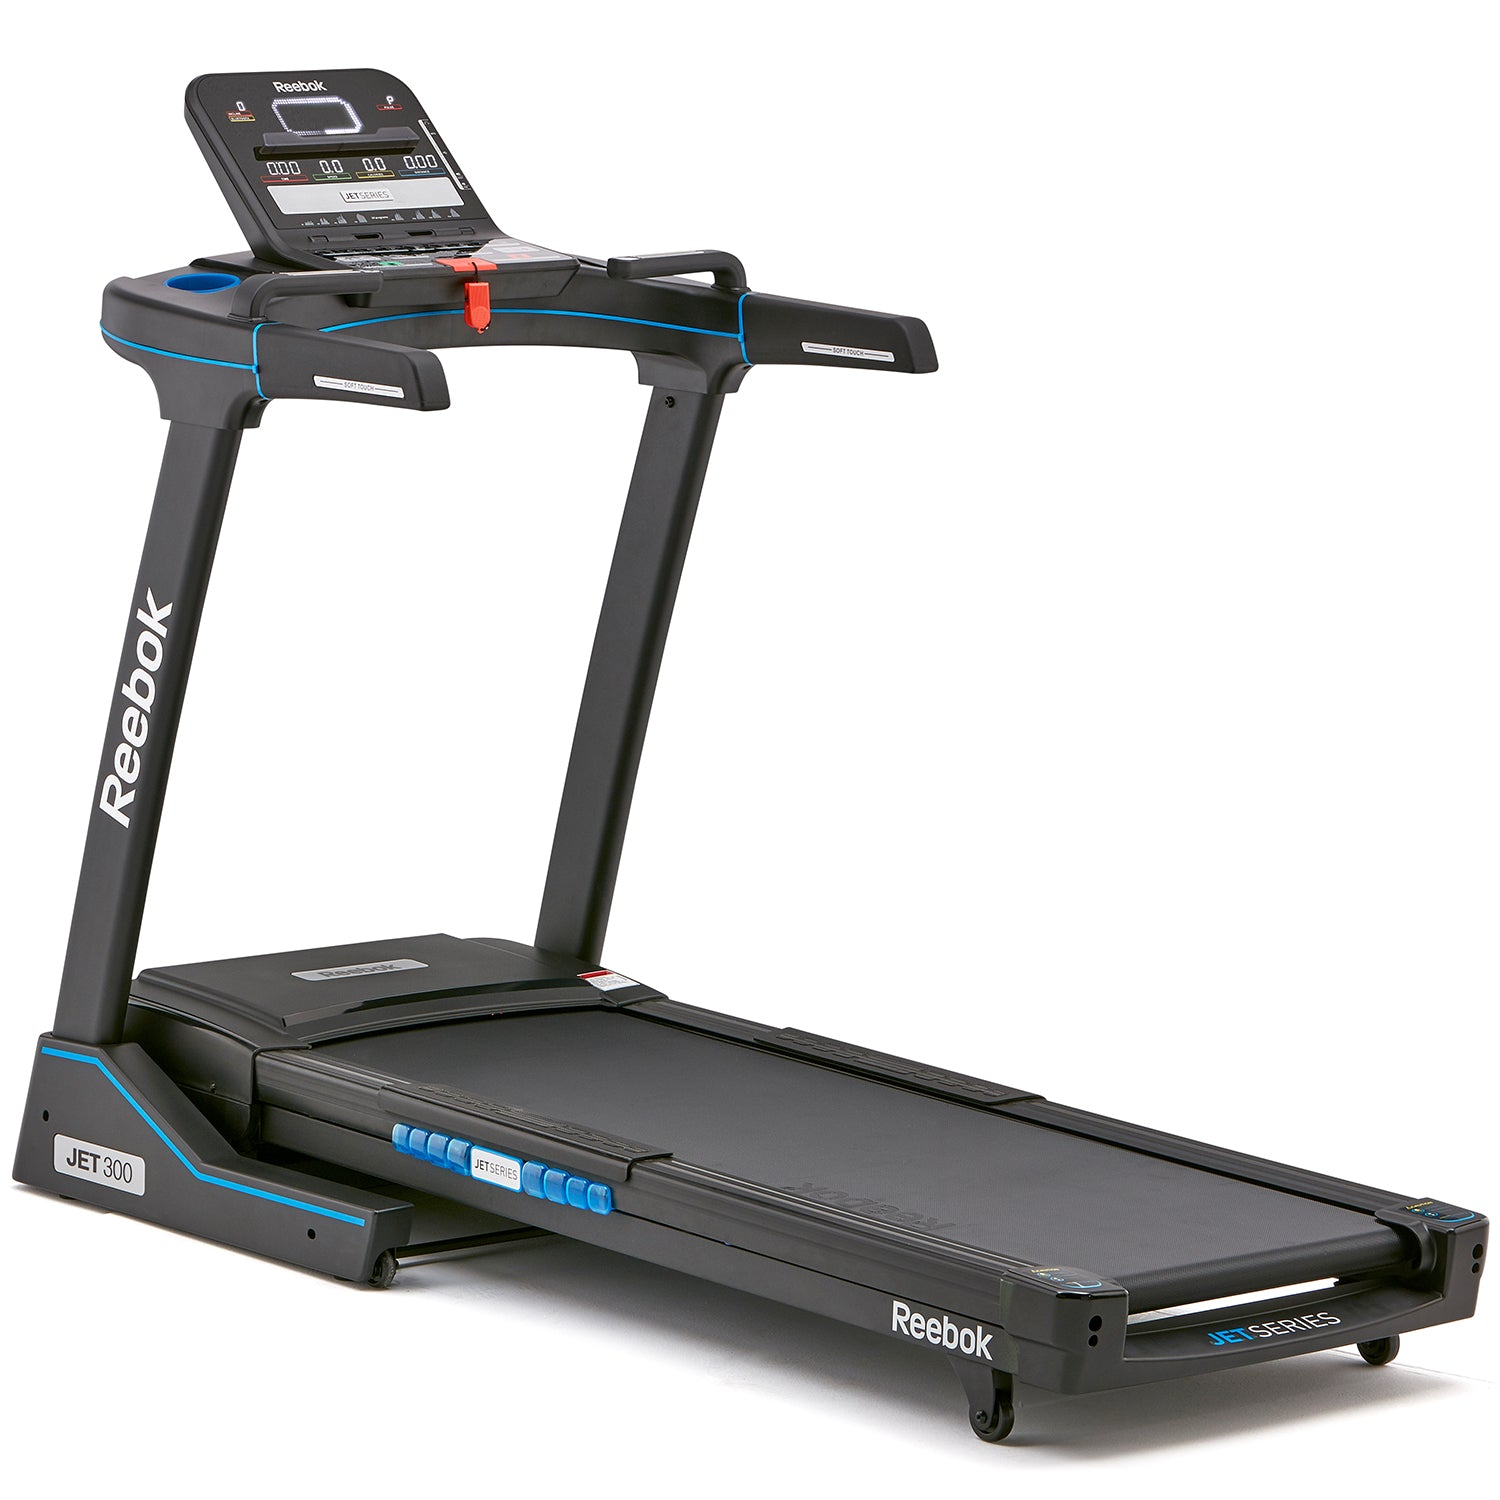 Jet 300 Series Treadmill + Bluetooth